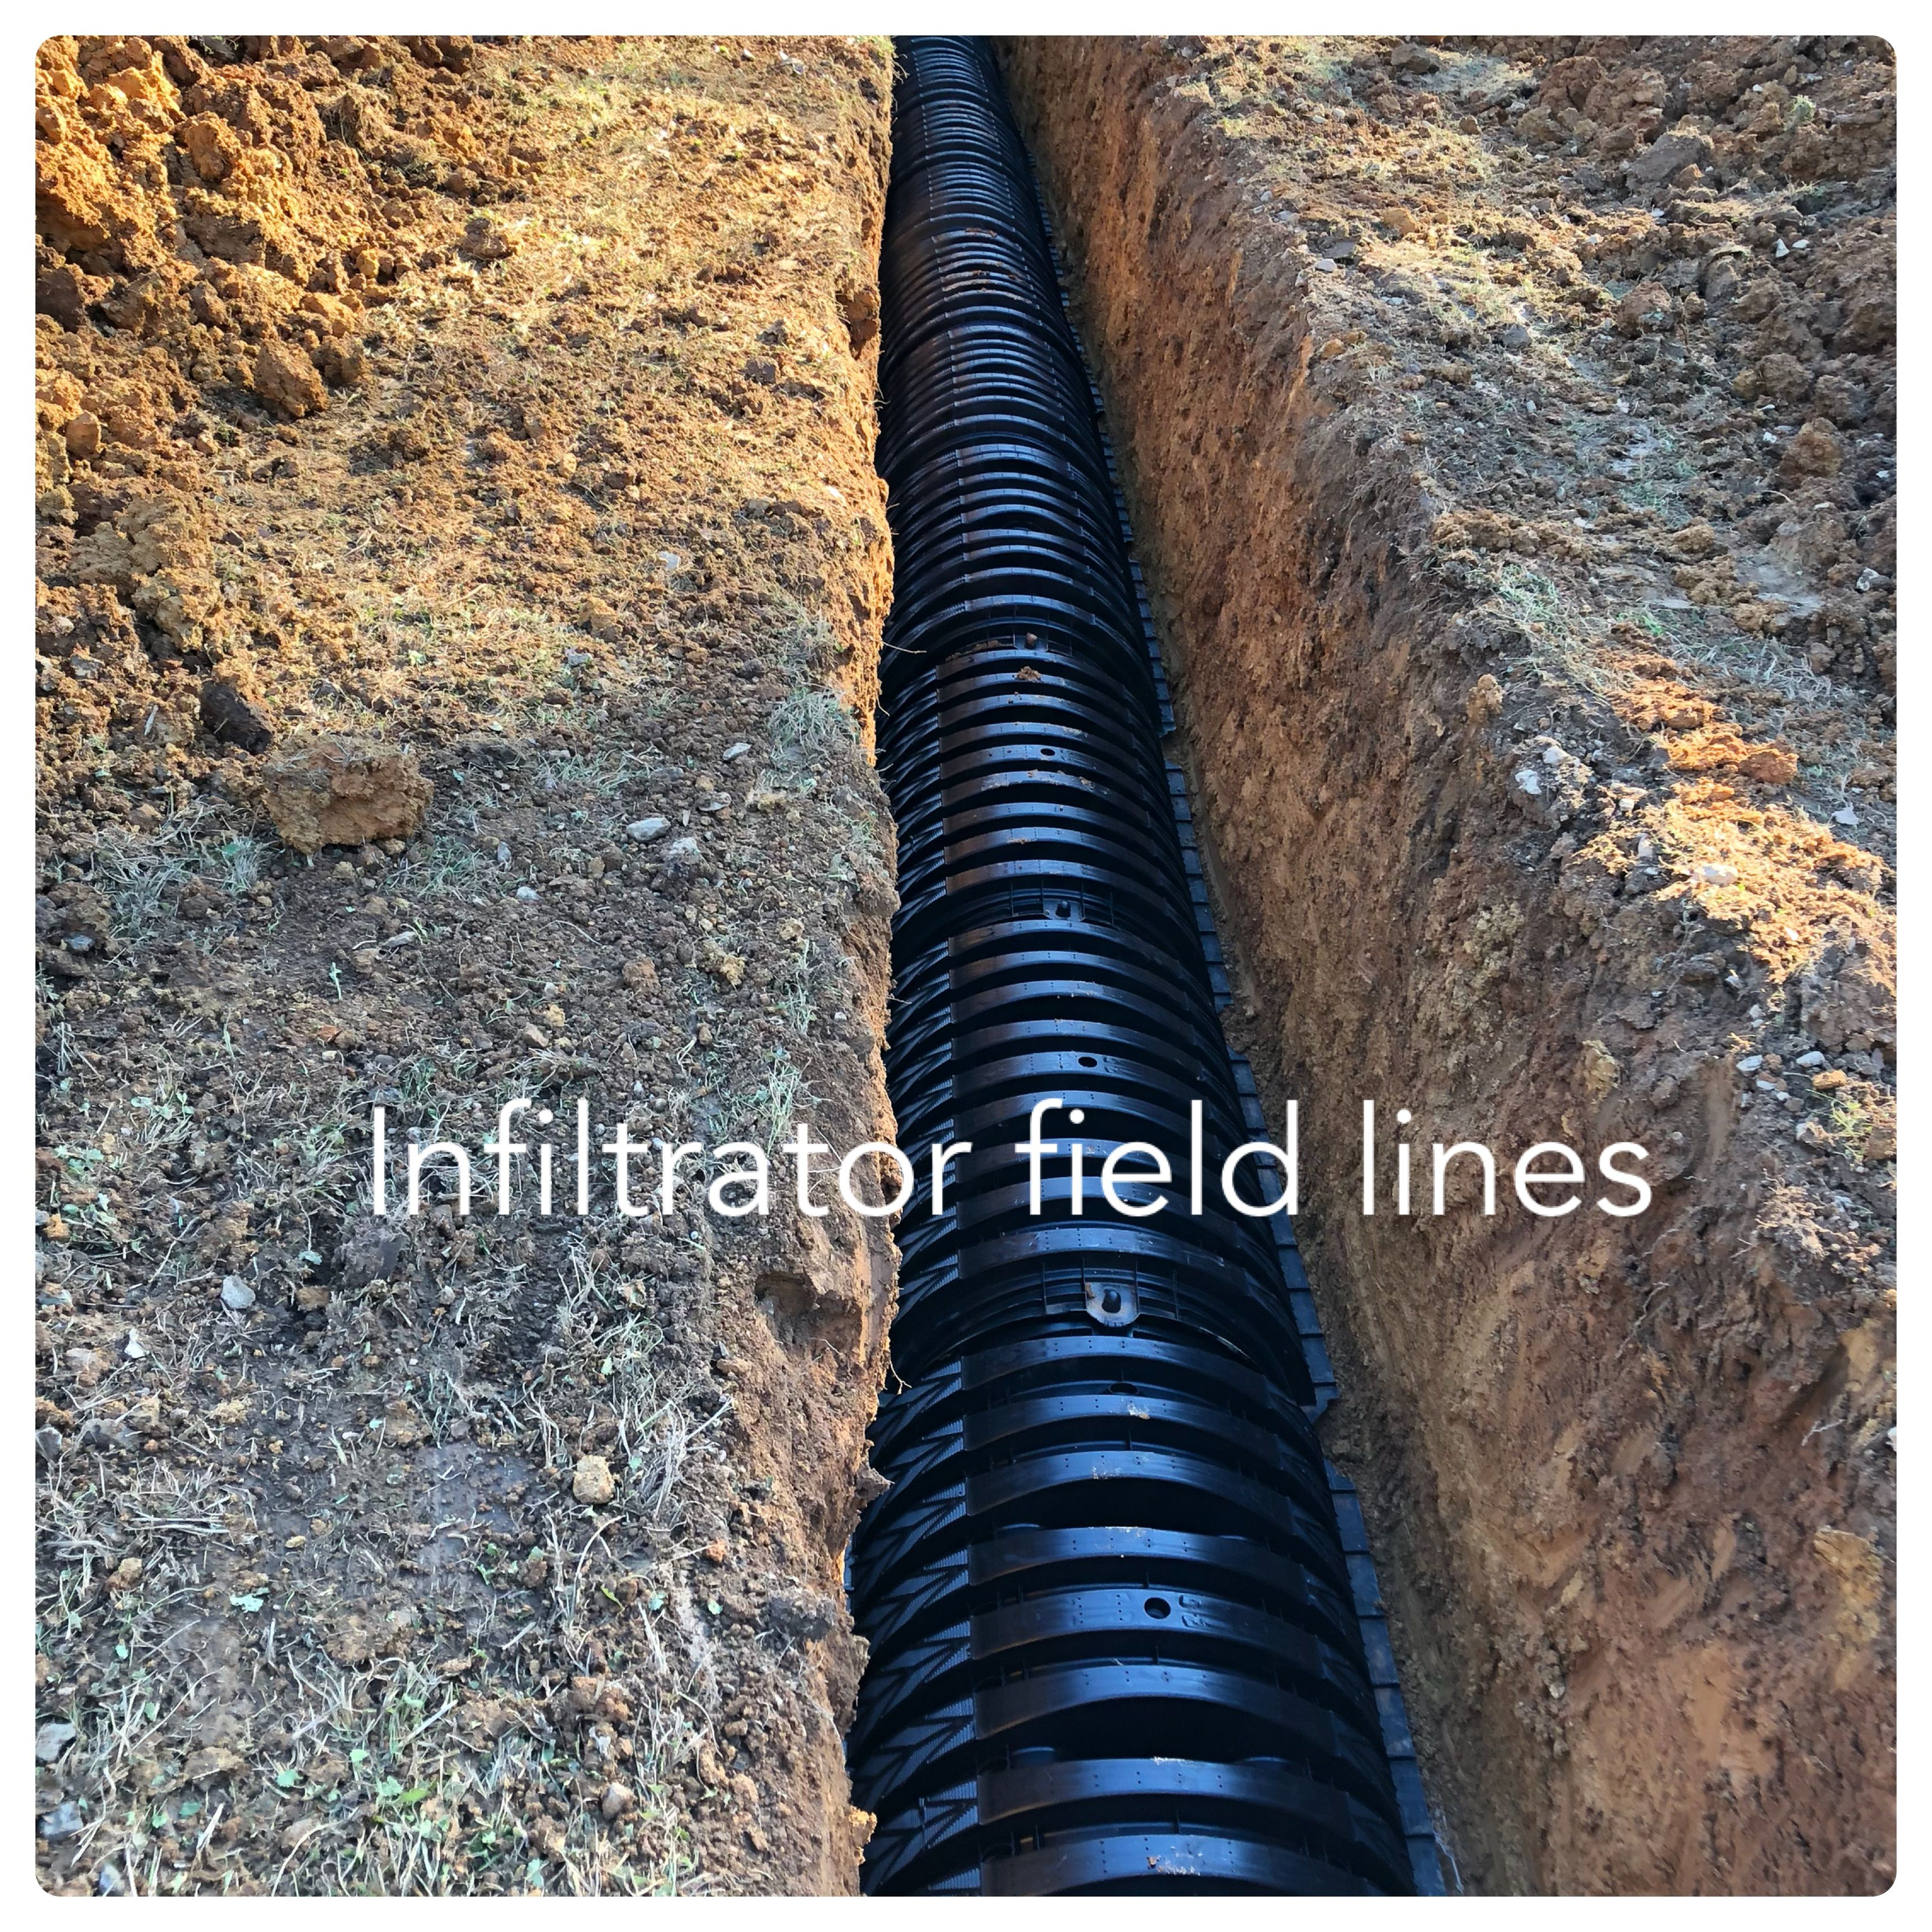 The field lines we installed for a customer 250 foot